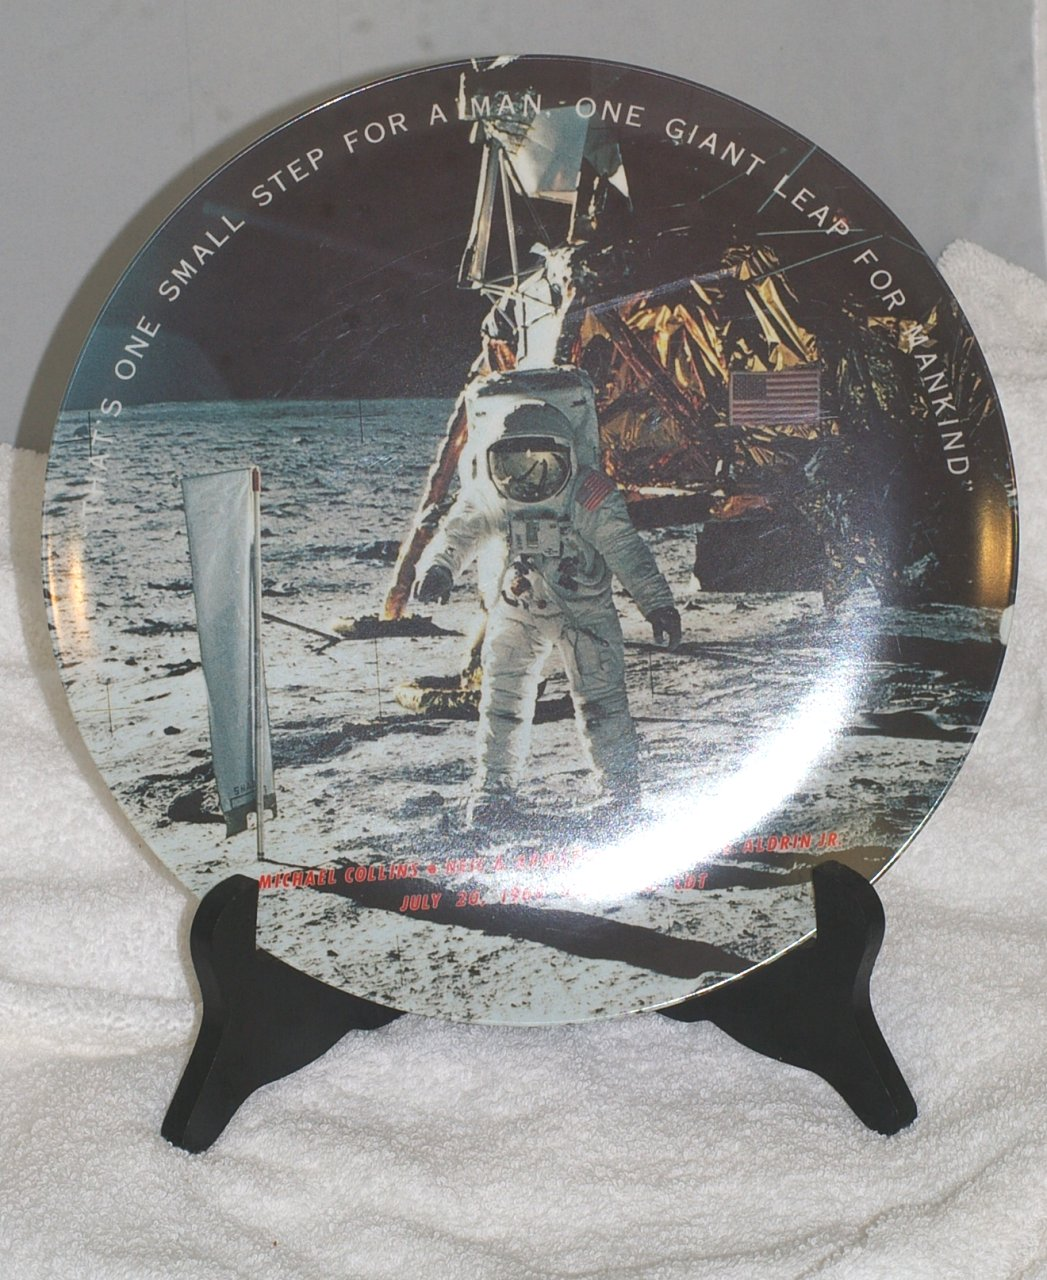 Apollo 11 Texas Ware Commemorative Plate from 1969